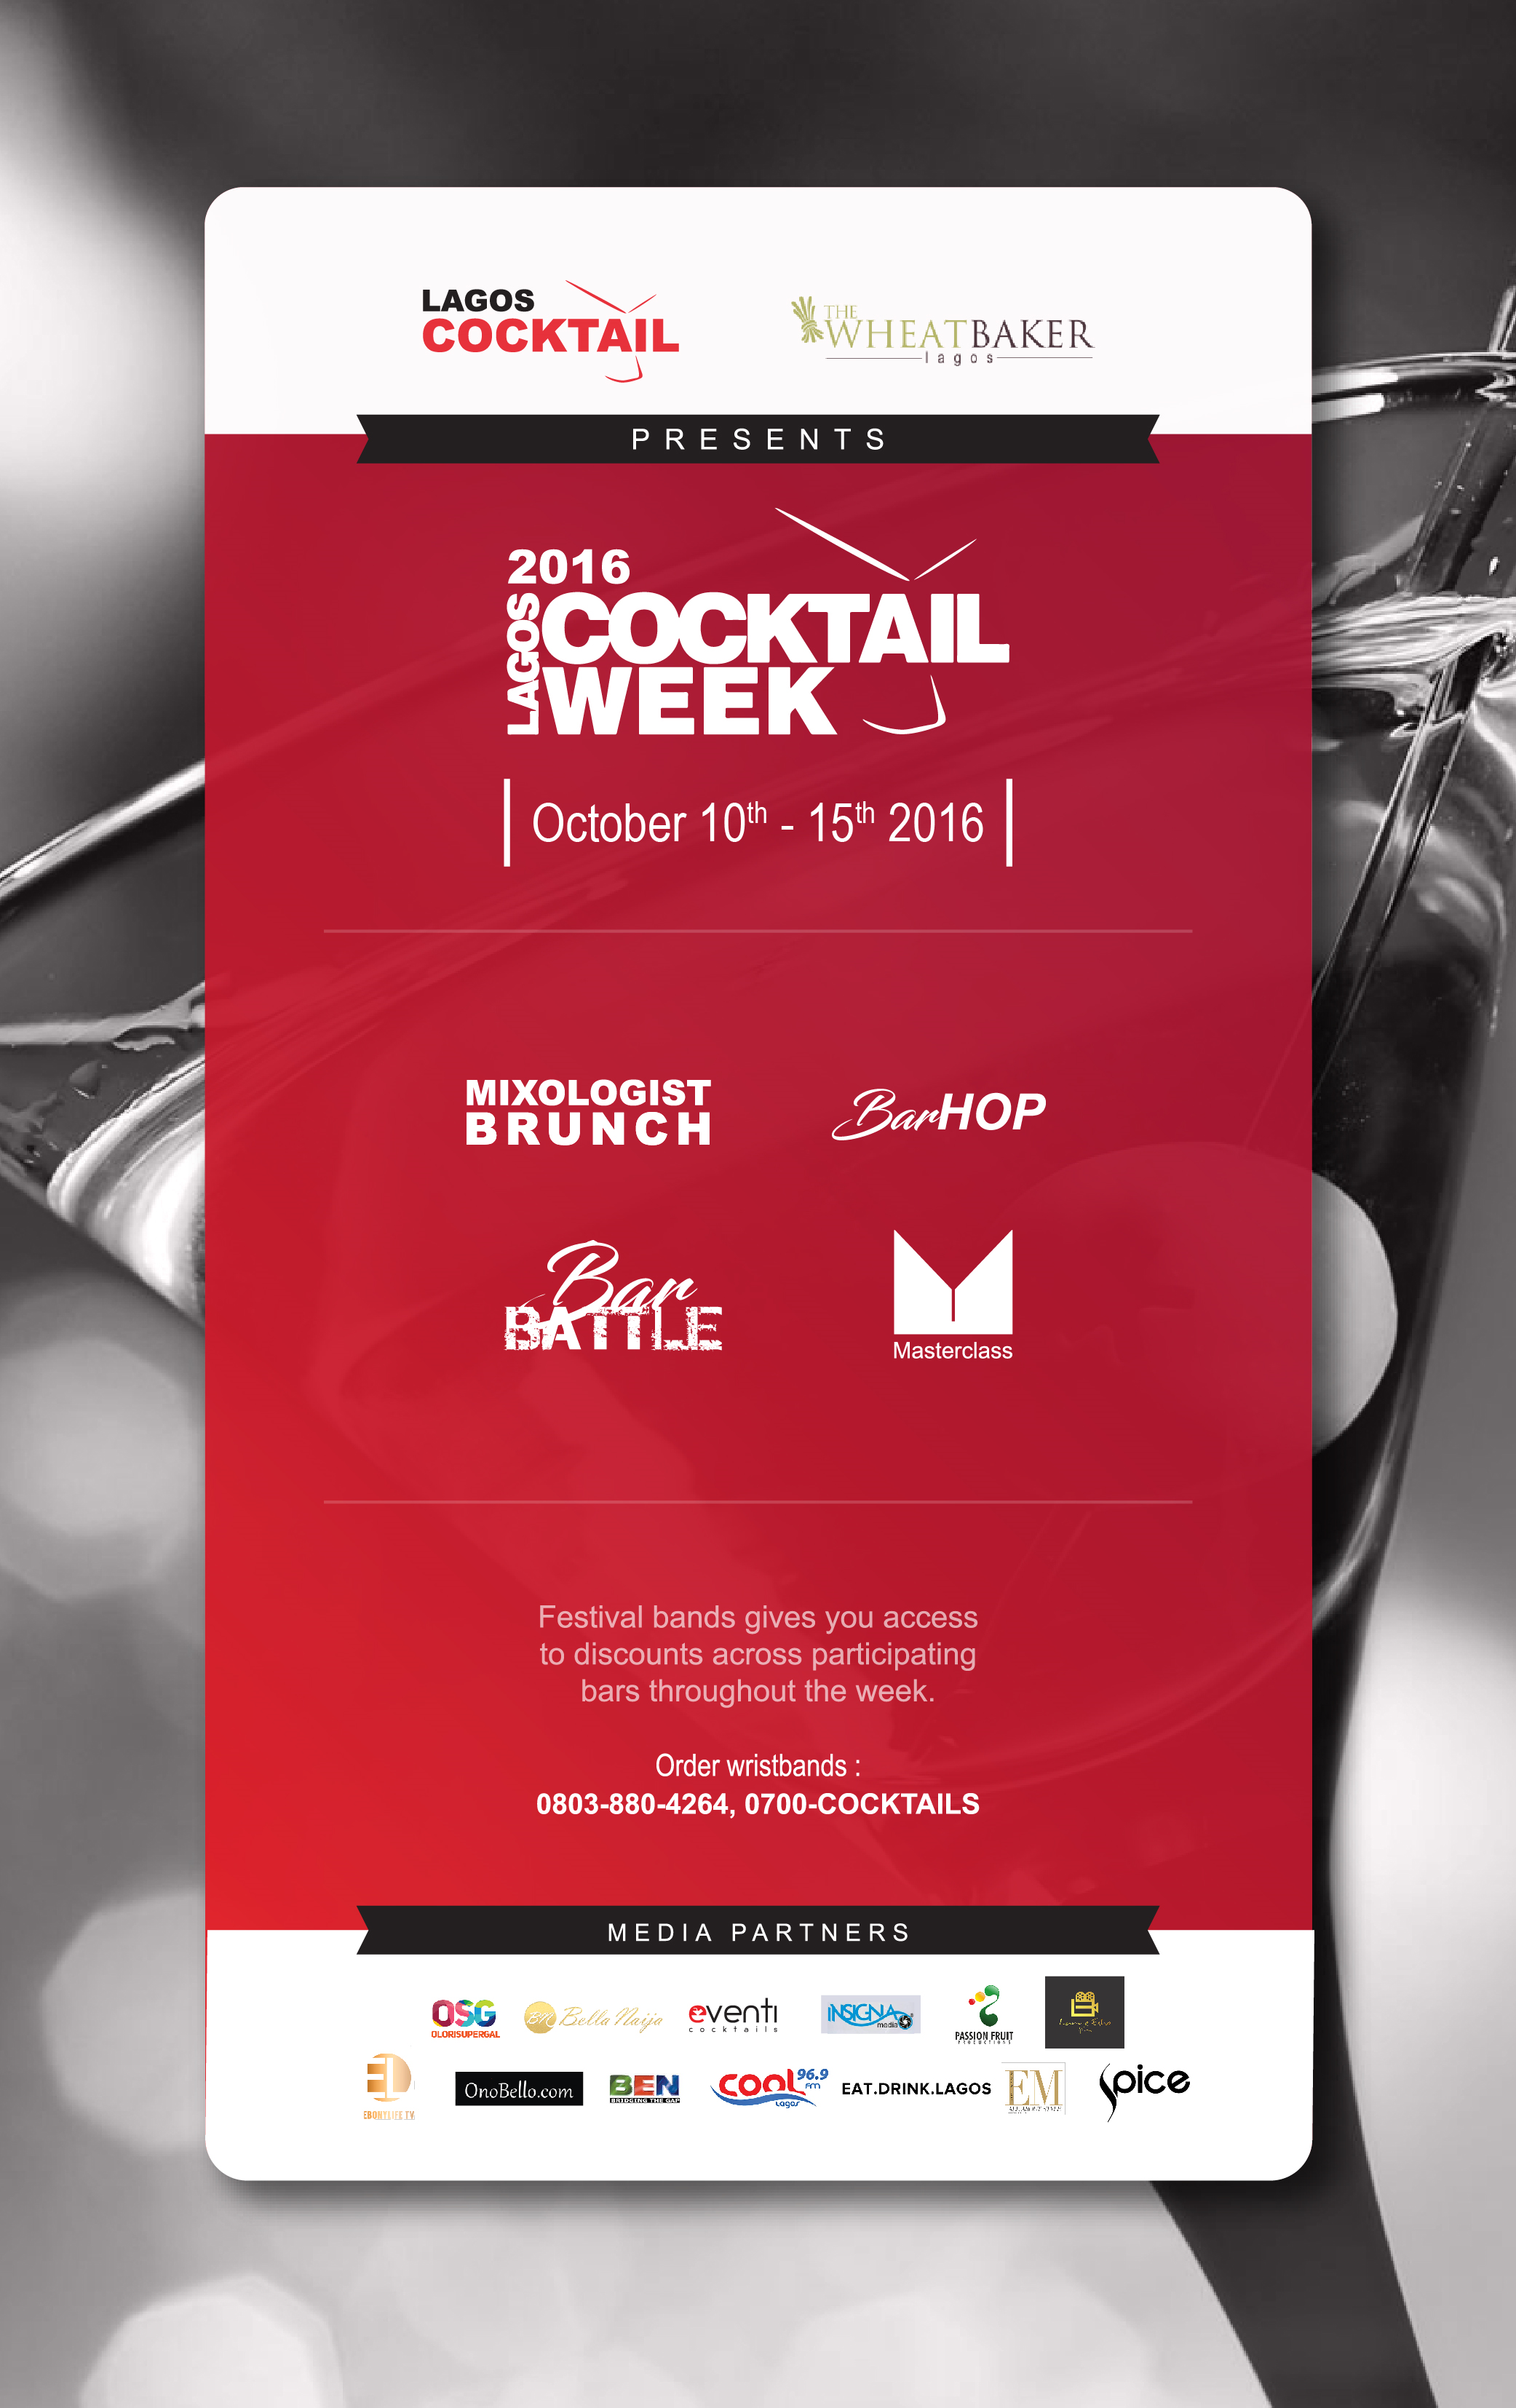 http://www.thecapital.ng/wp-content/uploads/2016/09/Lagos-Cocktail.png